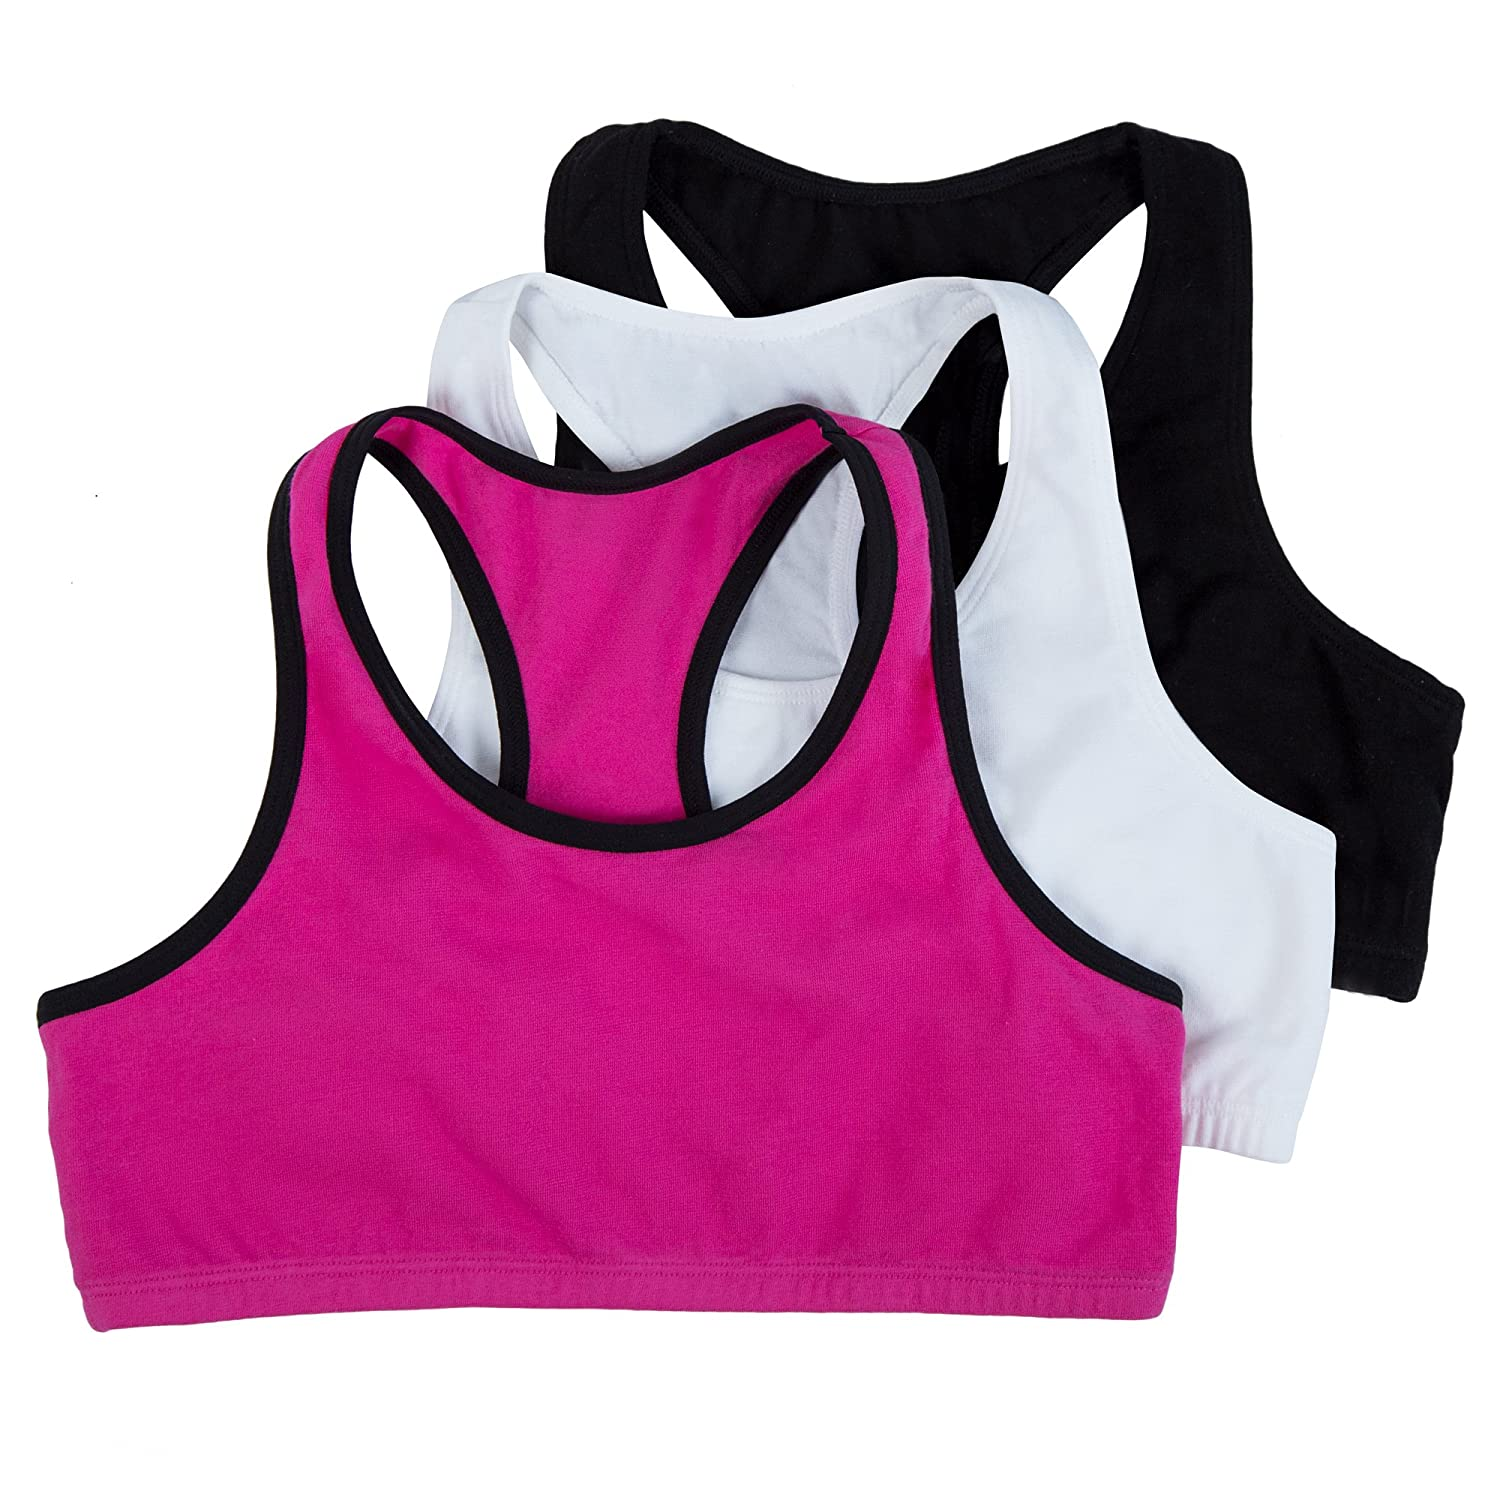 Fruit of the Loom Big Girls' Cotton Built-Up Sport Bra 94022